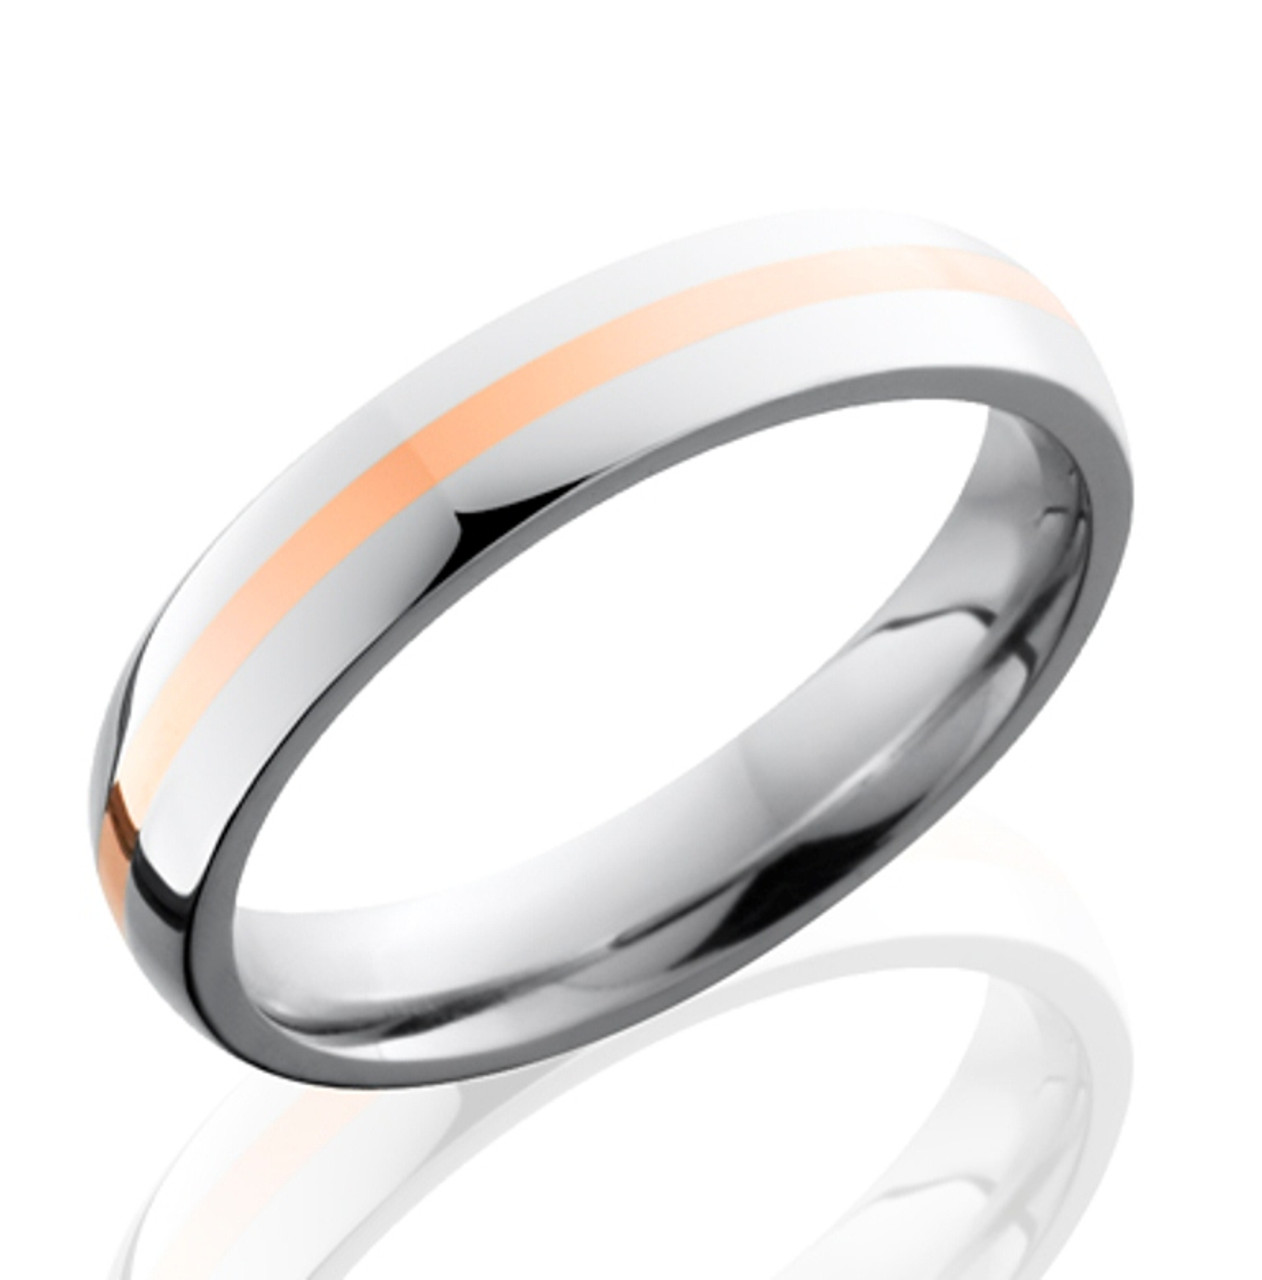 Narrow Gold Cobalt Wedding Band Cobalt Wedding Rings TitaniumBuzz